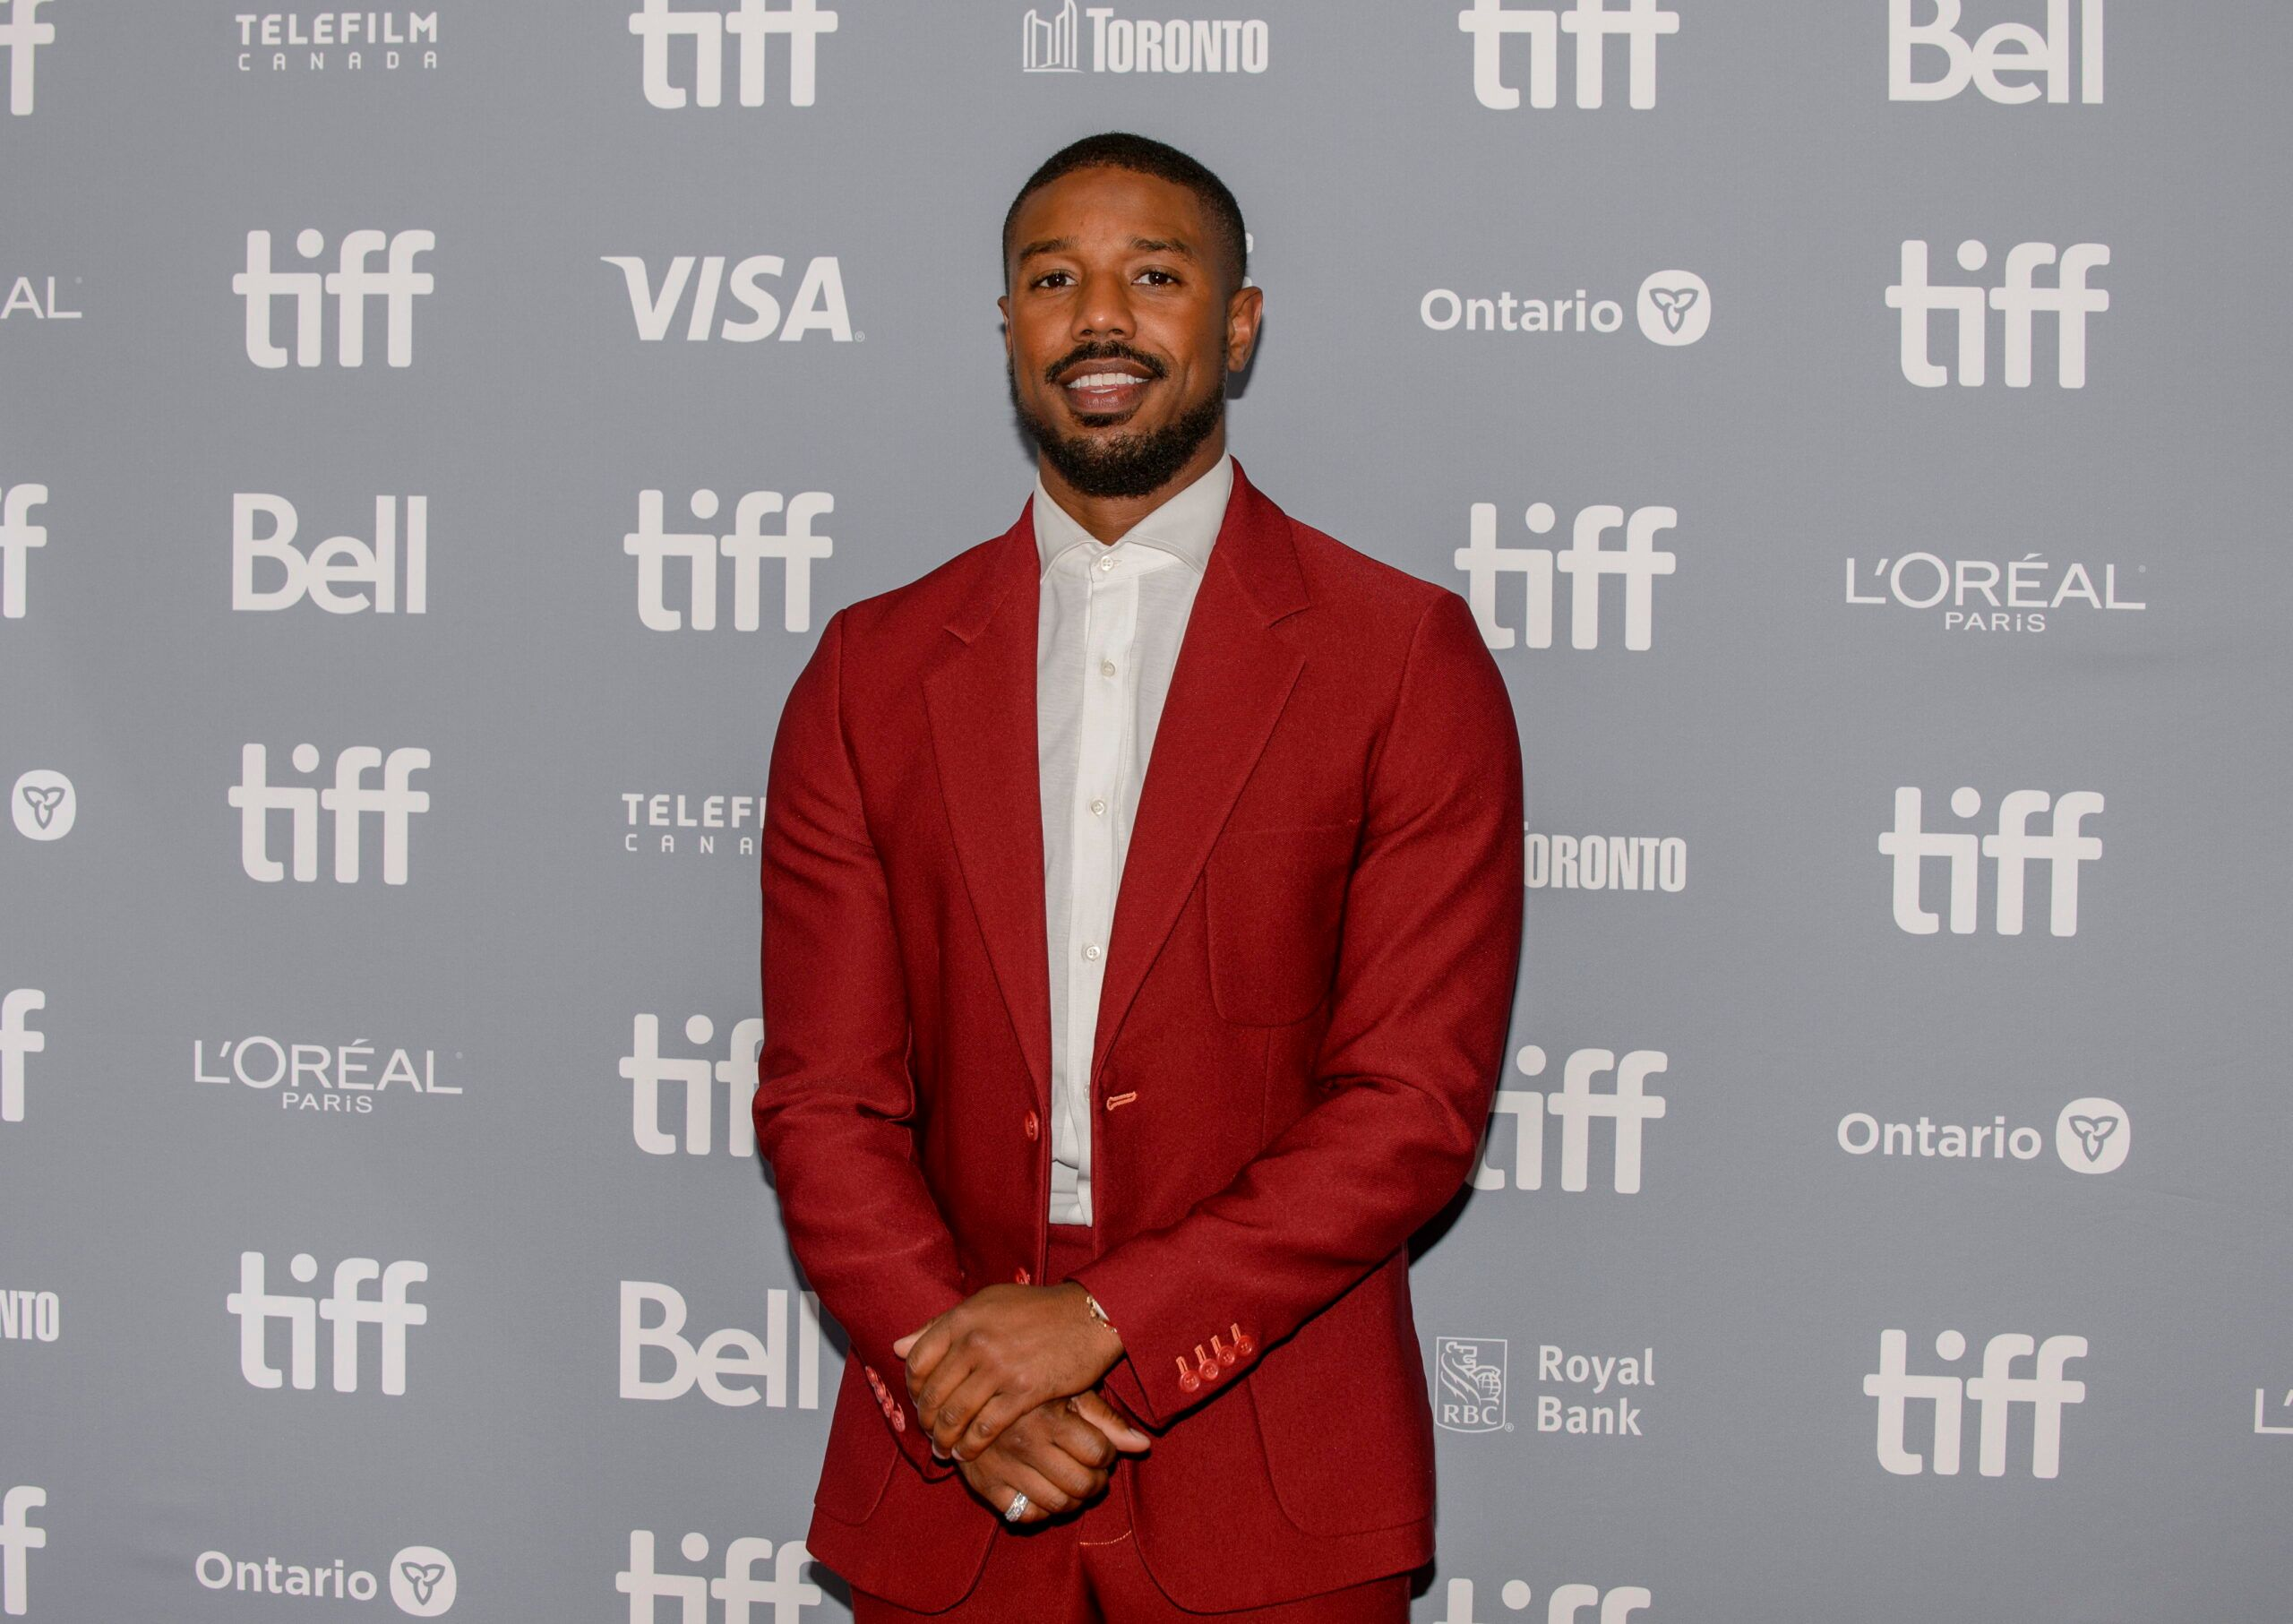 Michael B. Jordan Is PEOPLE's 2020 Sexiest Man Alive